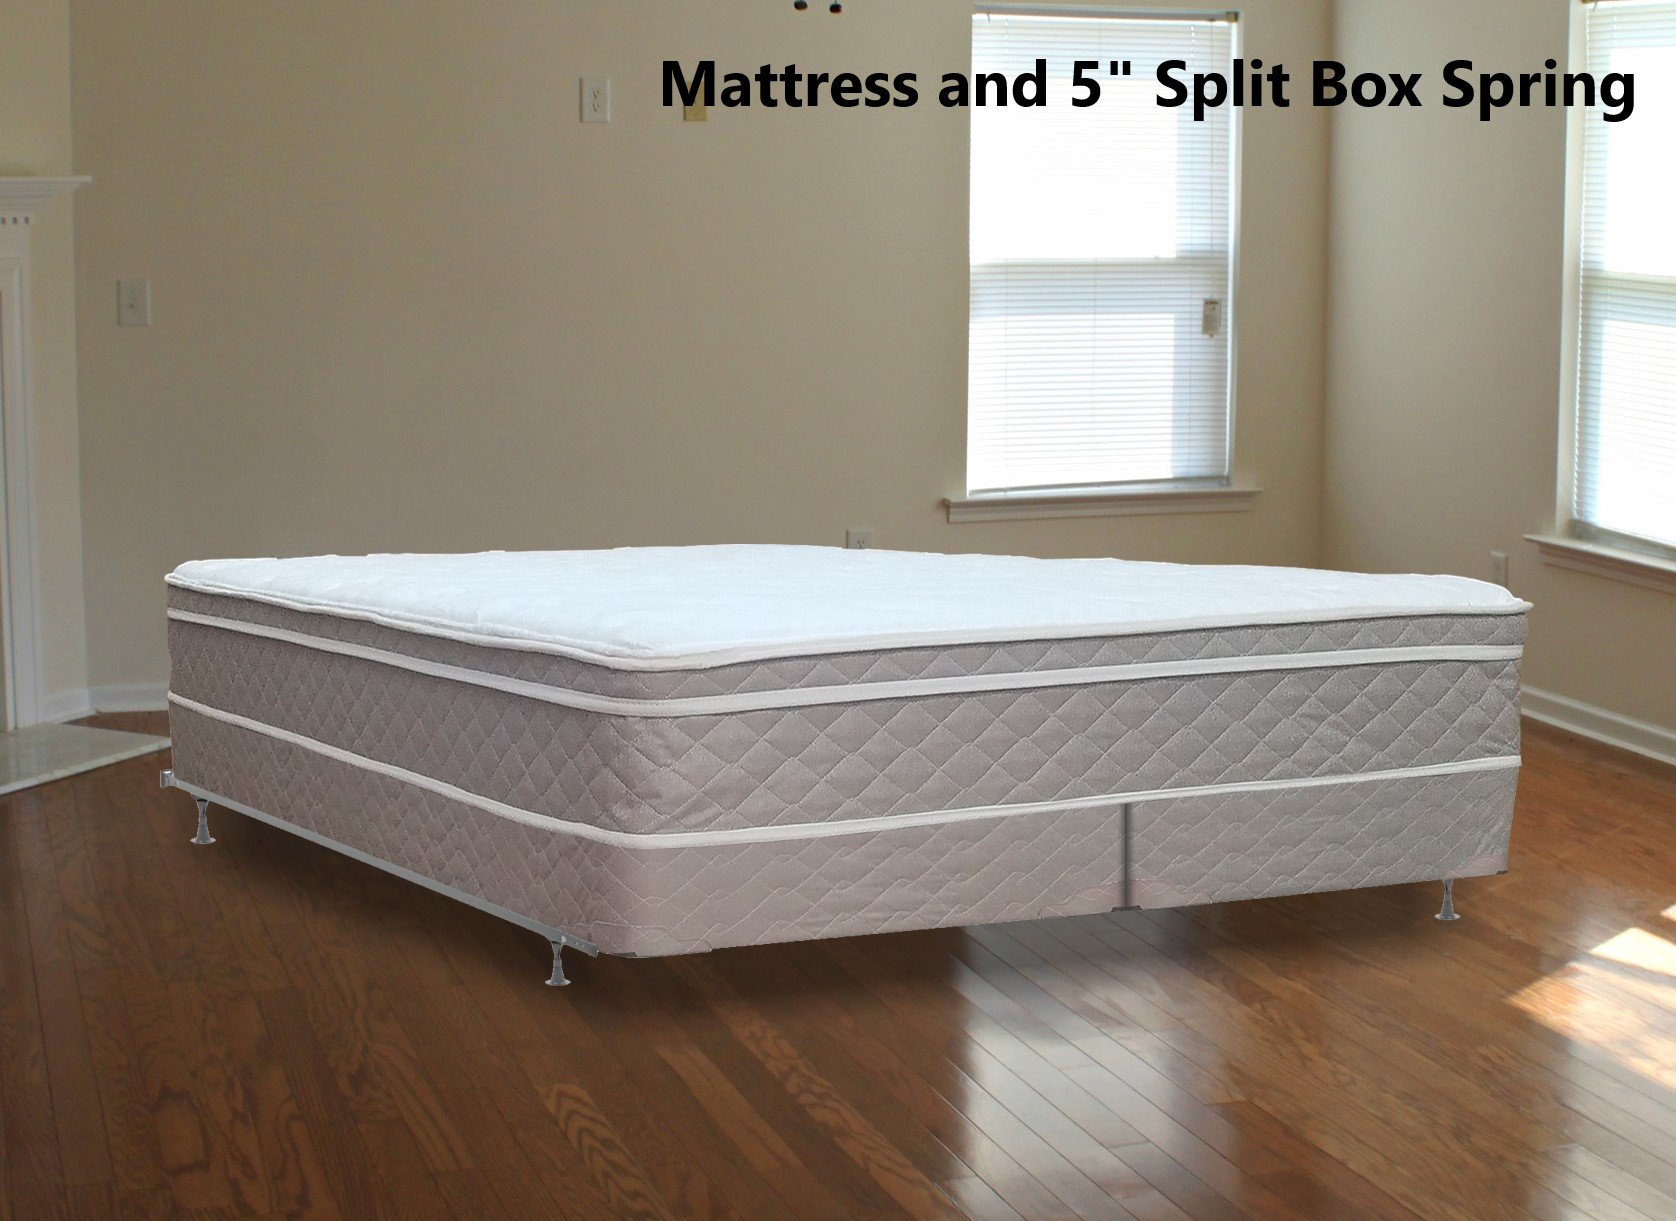 Continental Mattress 10''  Pillowtop Eurotop  Fully Assembled Orthopedic Back Support  Plush  Mattress and 5-Inch Split Box Spring,Full XL